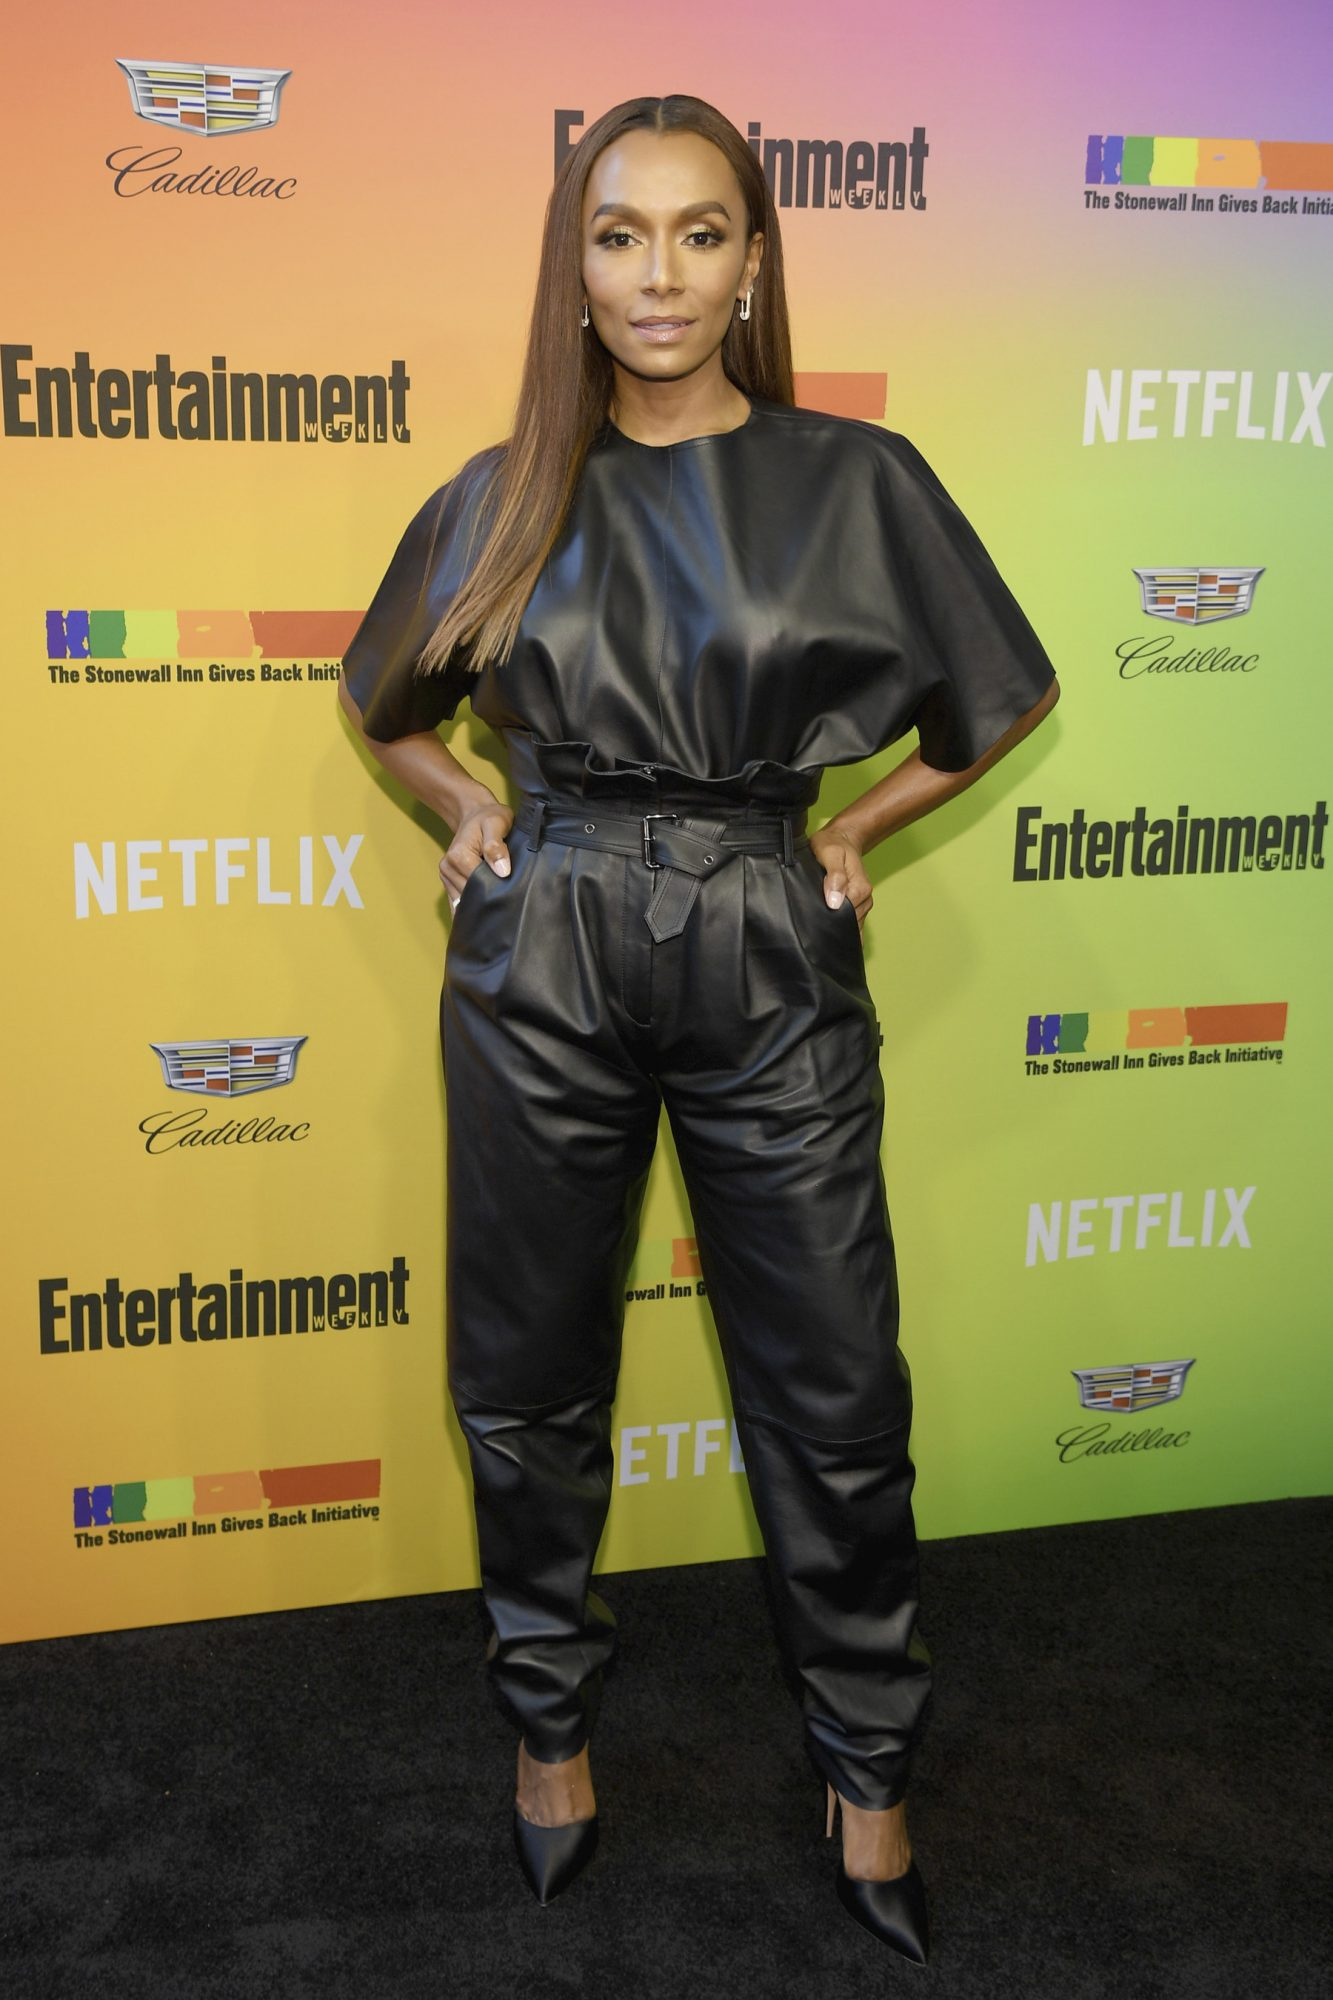 NEW YORK, NEW YORK - JUNE 05: Janet Mock attends as Entertainment Weekly Celebrates Its Annual LGBTQ Issue at the Stonewall Inn on June 05, 2019 in New York City. (Photo by Dimitrios Kambouris/Getty Images for Entertainment Weekly)